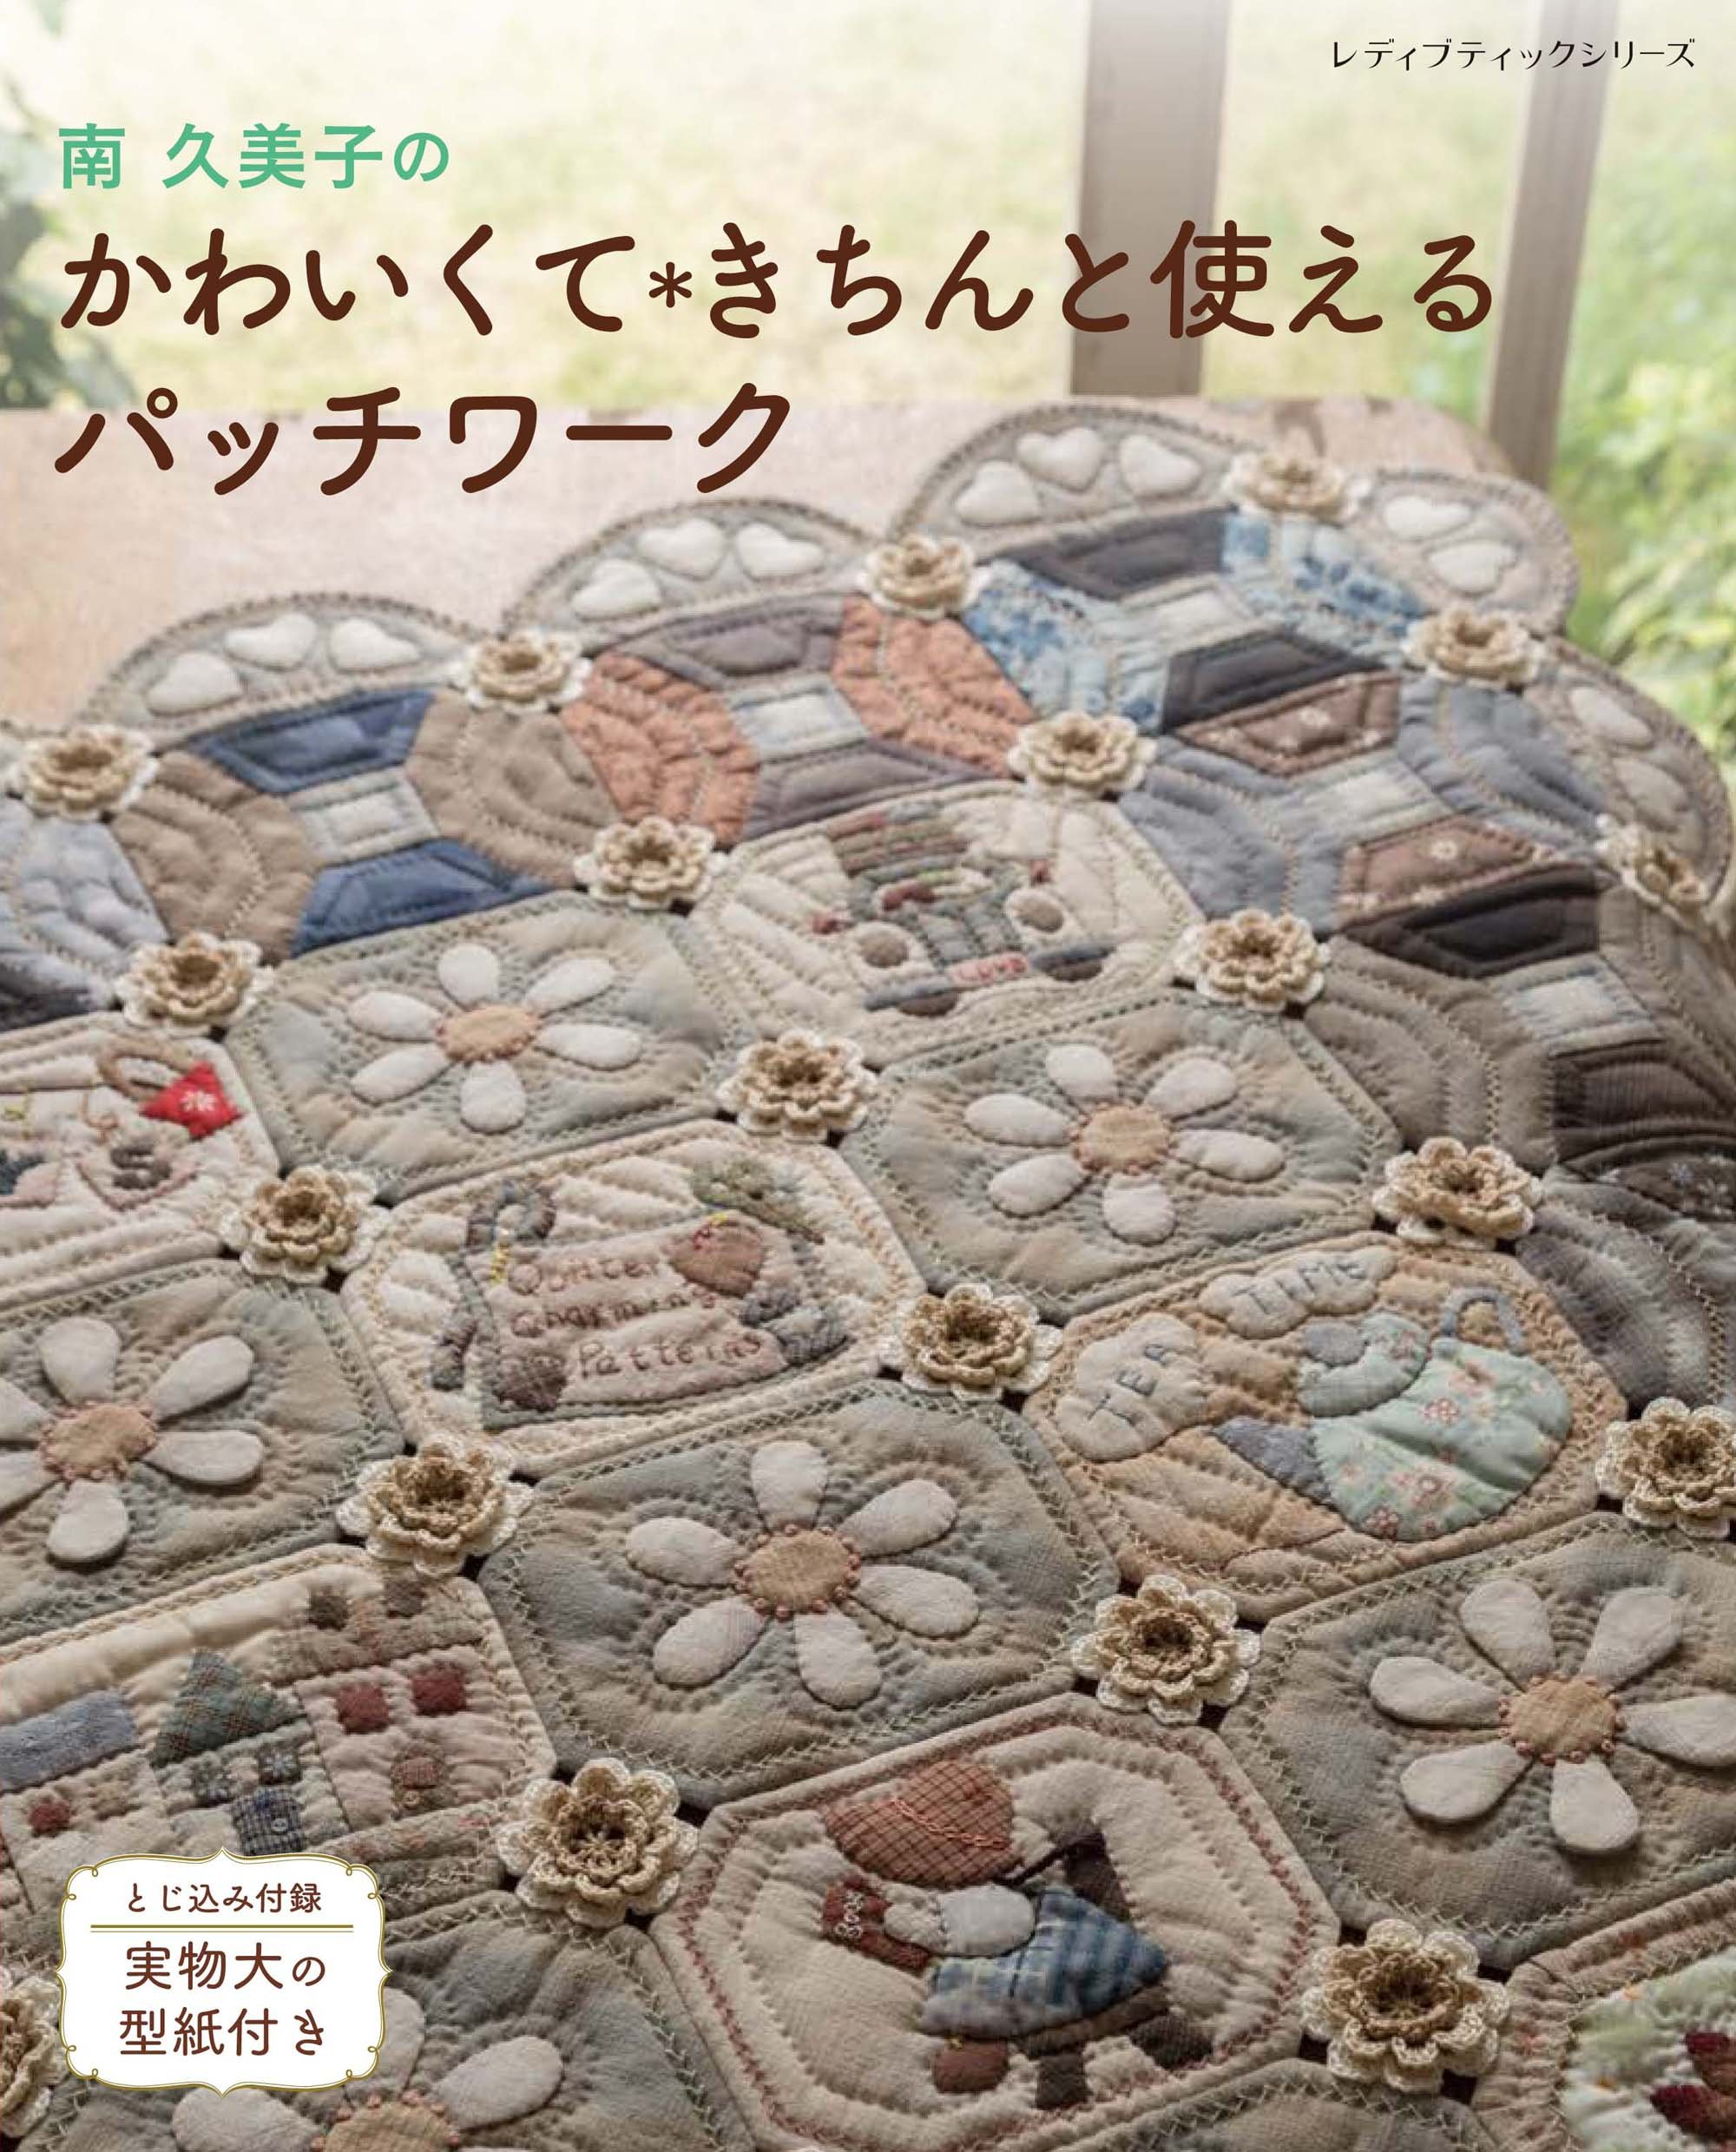 South cute and properly use patchwork of Kumiko